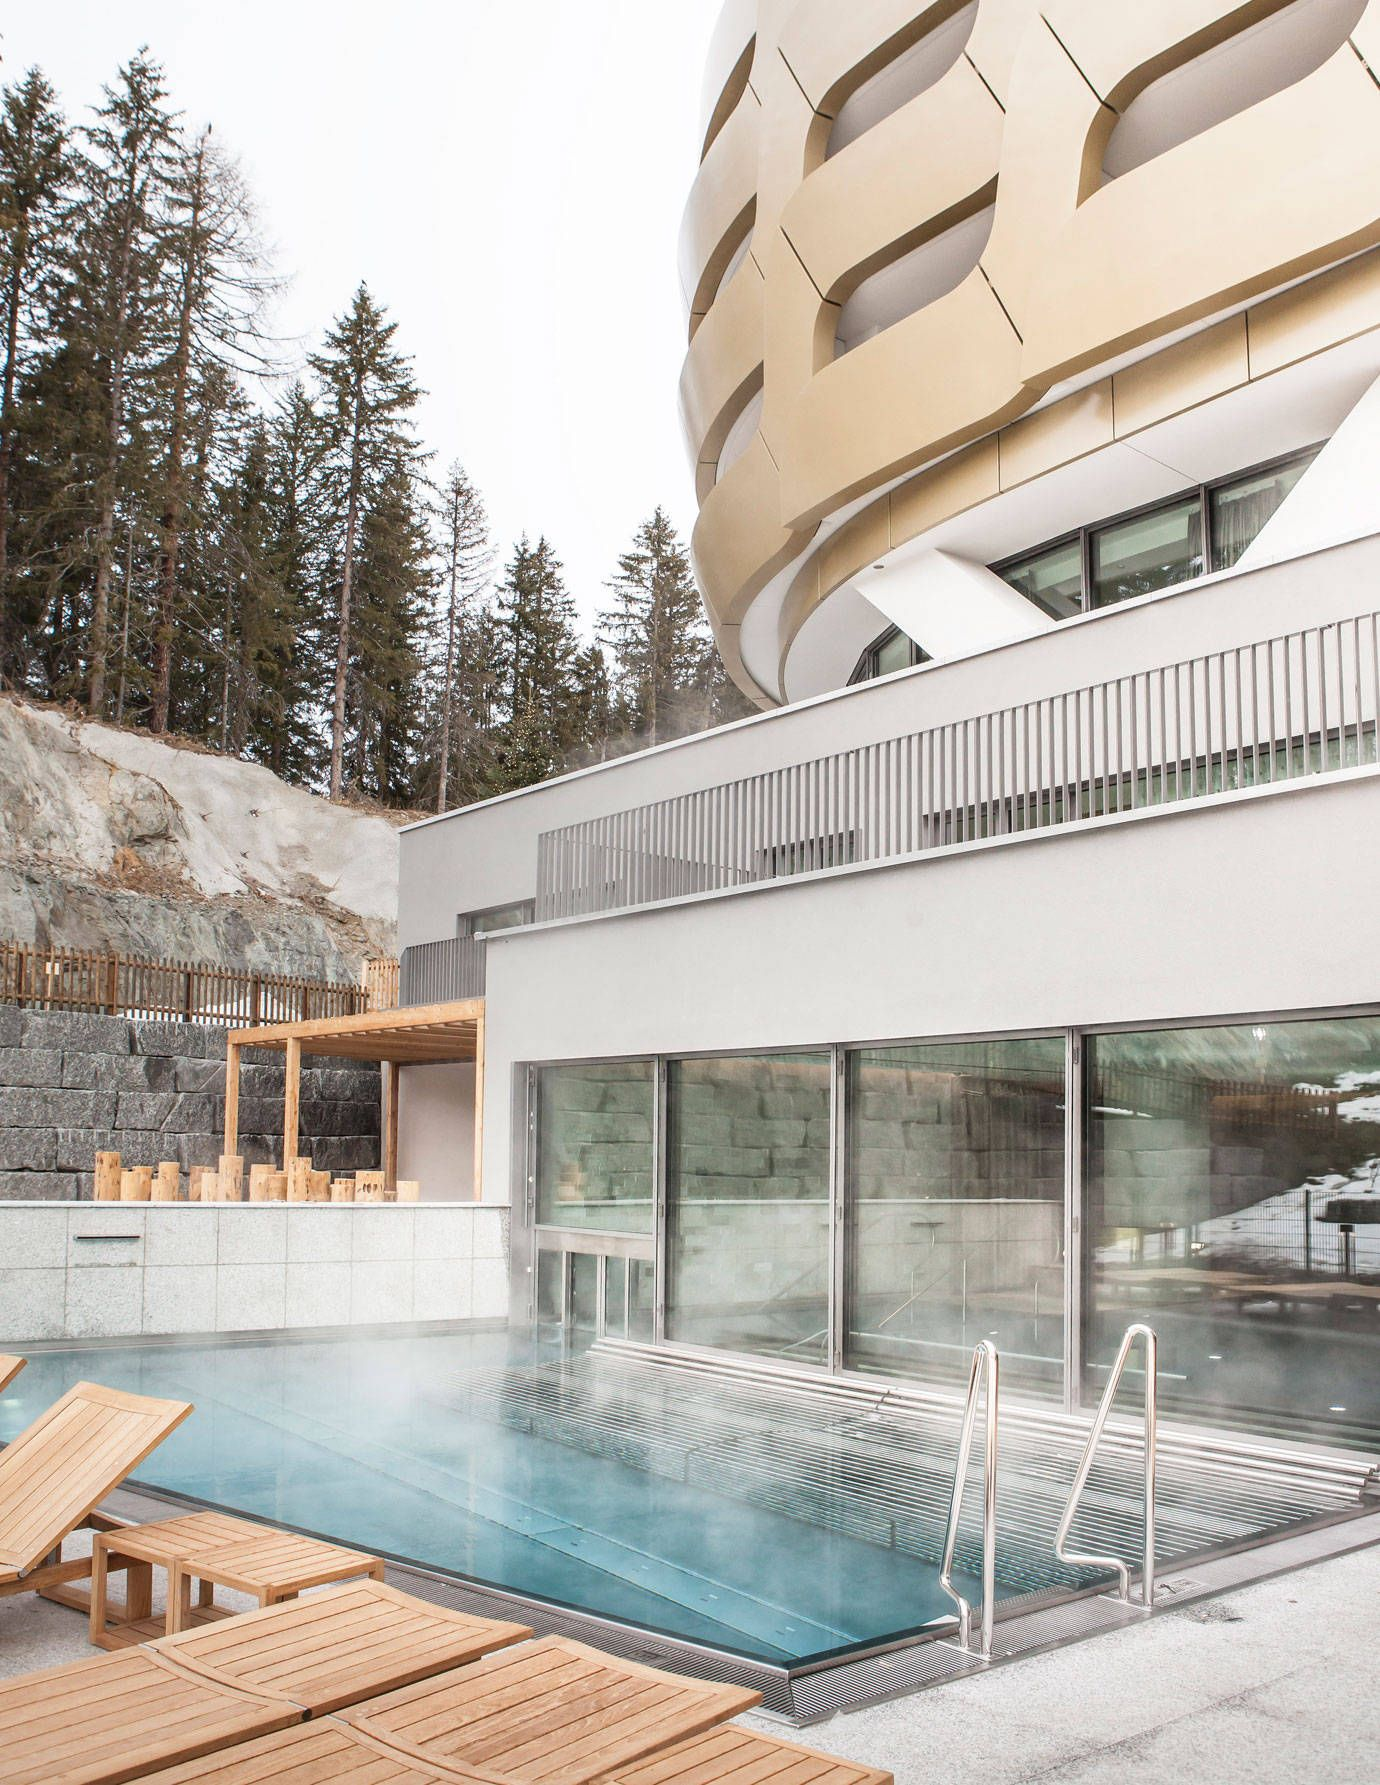 The InterContinental Davos, A Swiss Alps Getaway for Ski and Spa Lovers